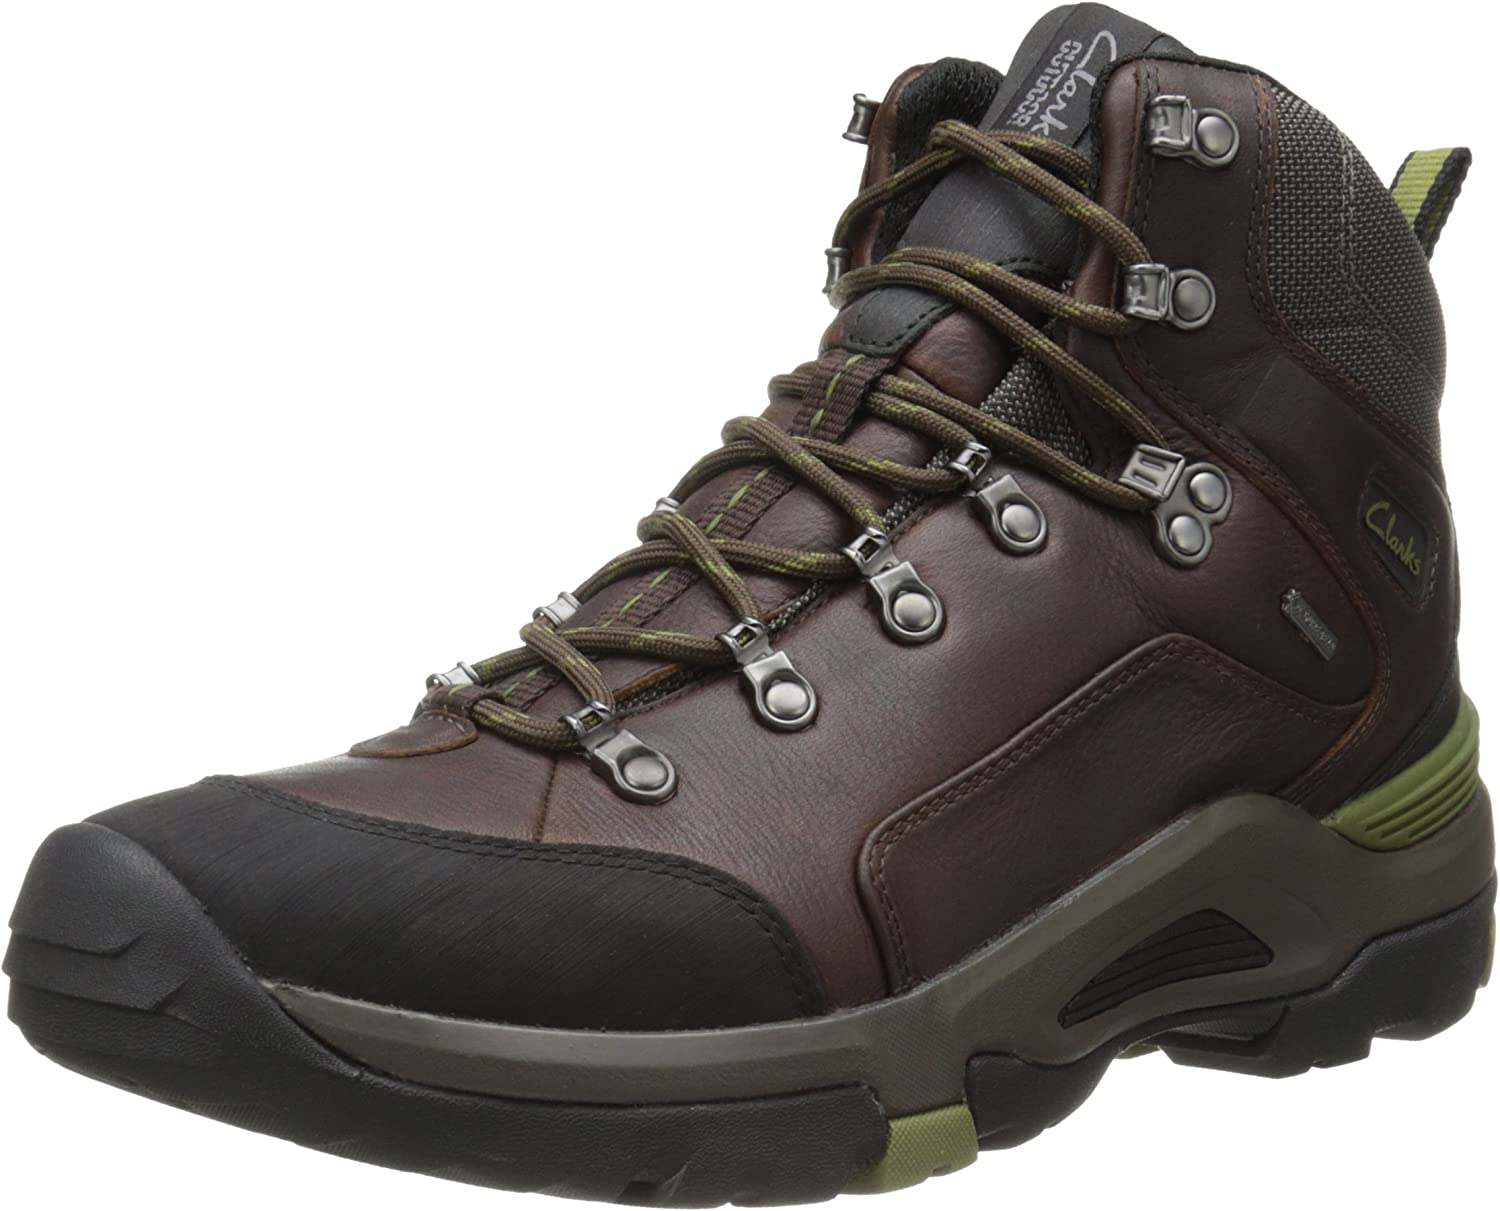 Clarks Men's Outride Hi GTX Waterproof Boot